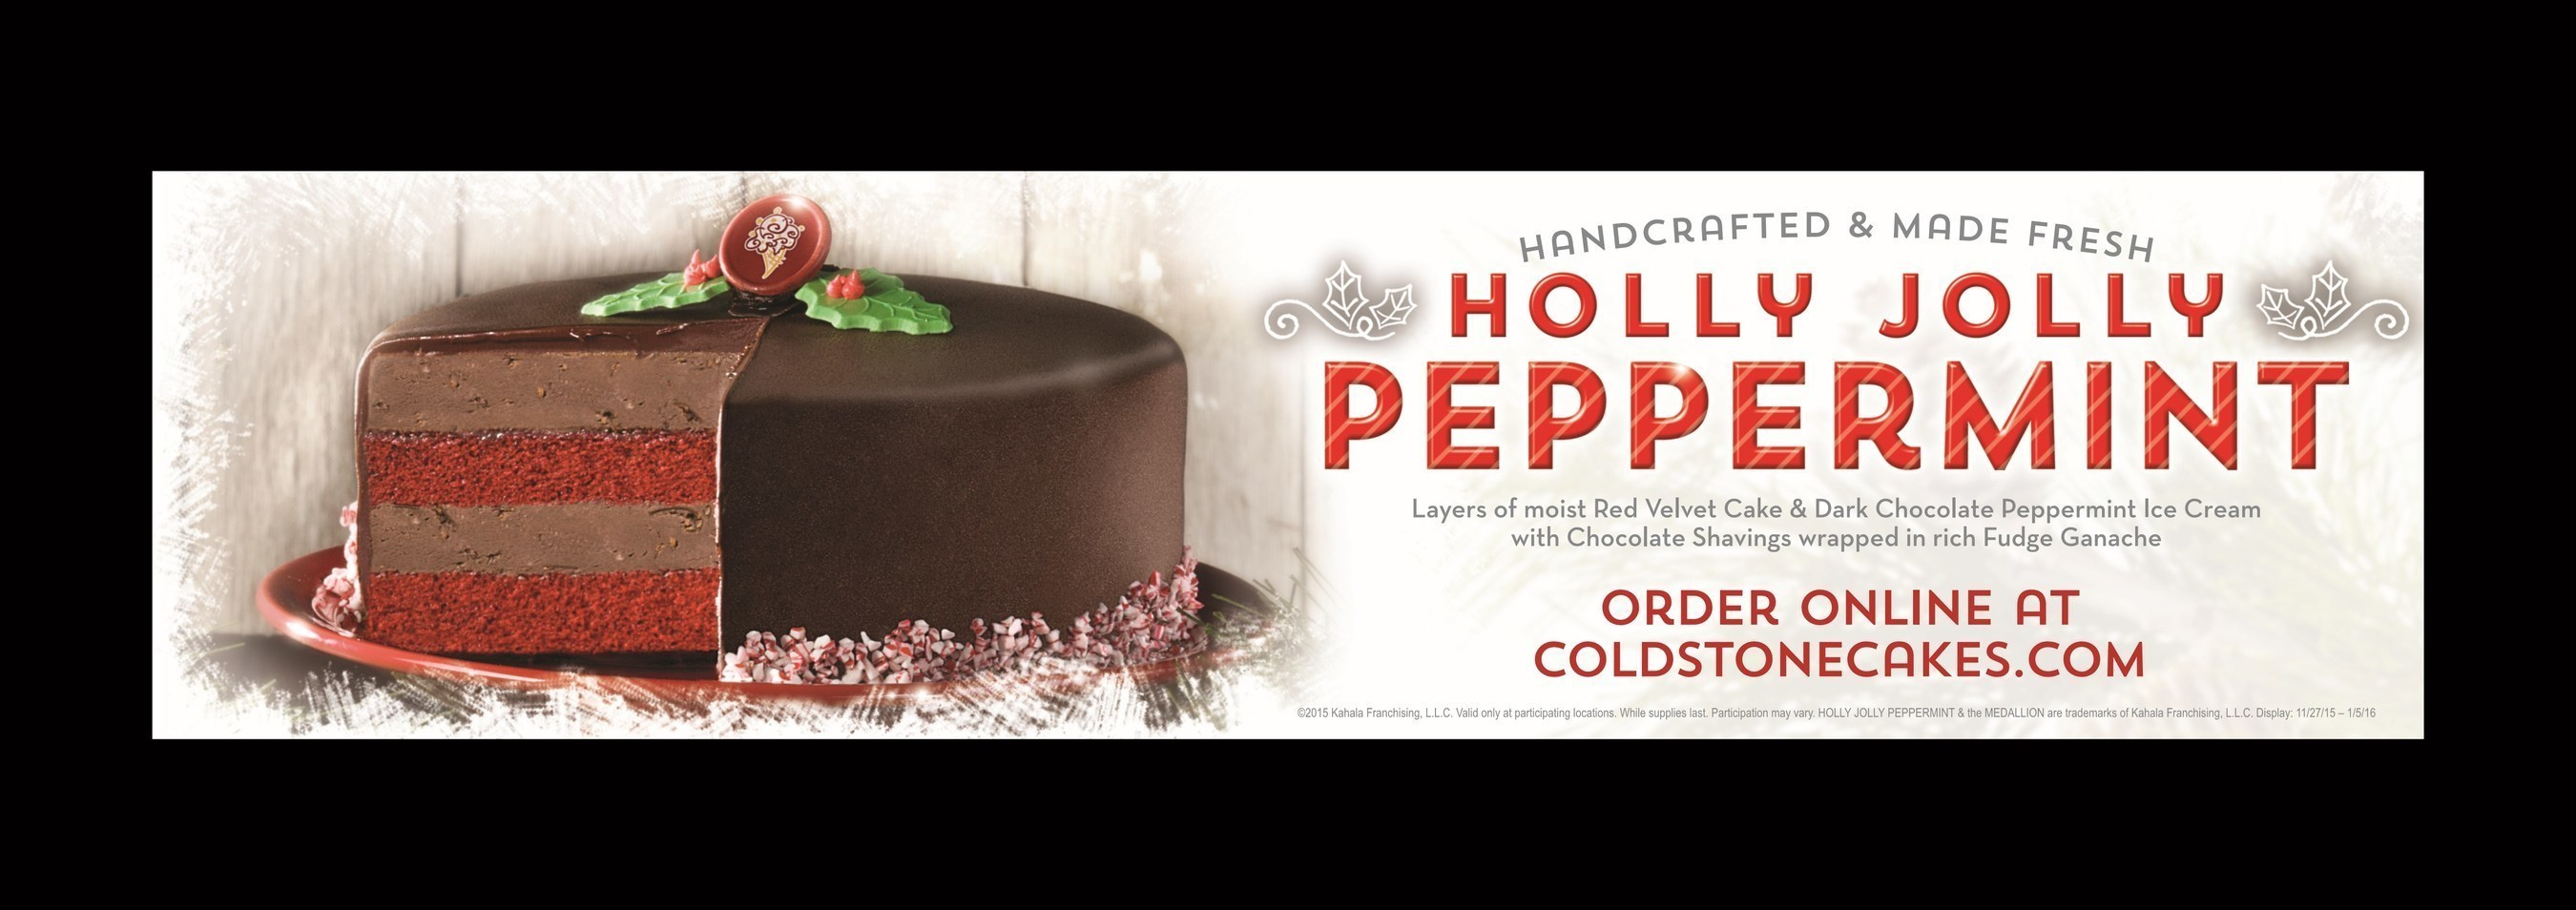 Holly Jolly Peppermint Cake